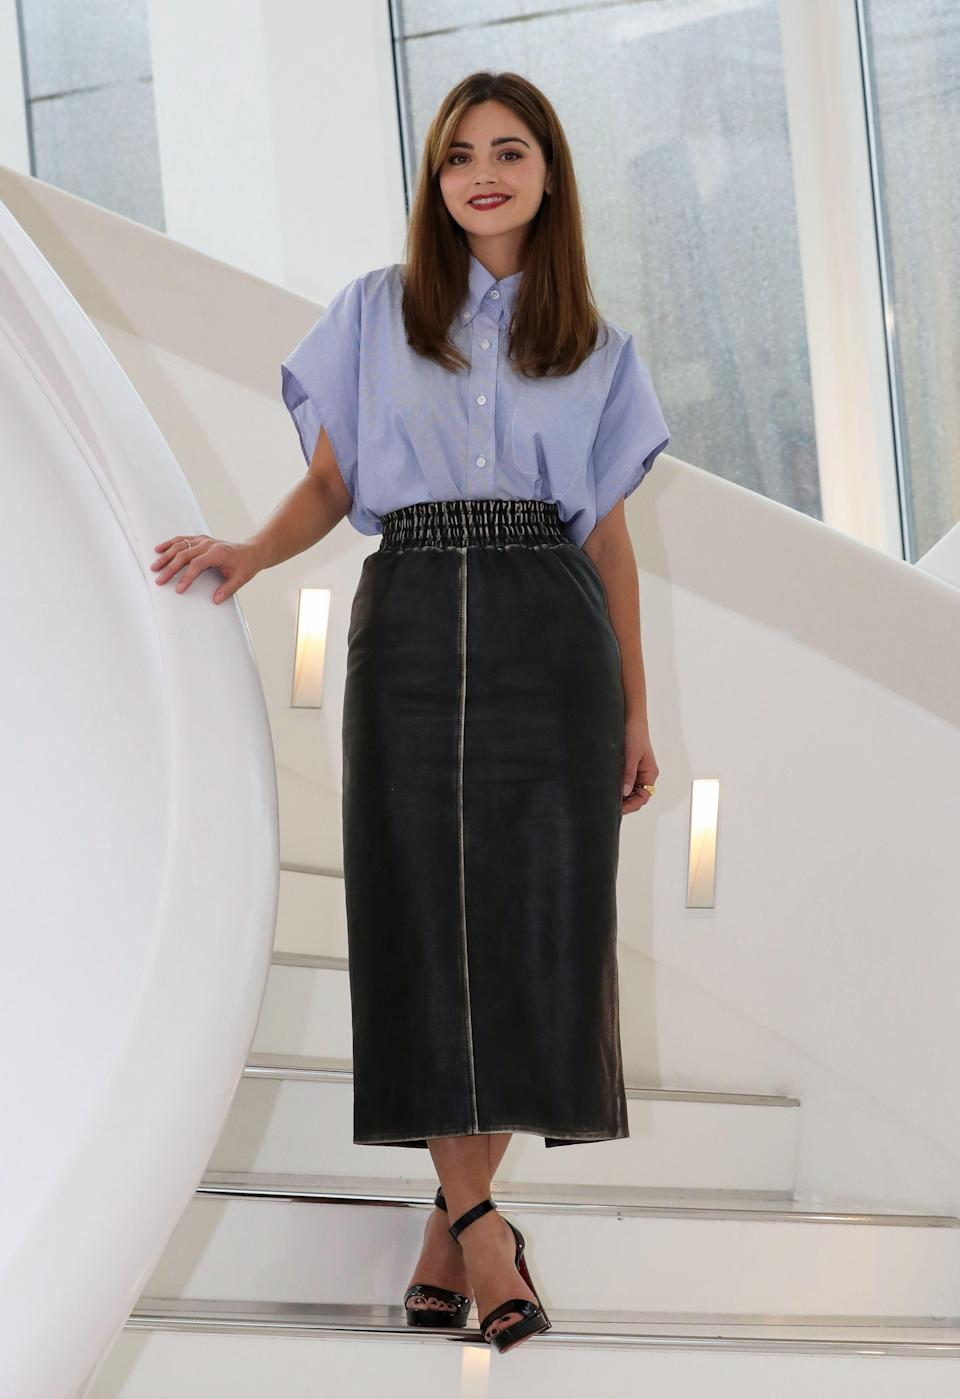 <p>'The Cry' and 'Victoria' actress wore an oversized shirt, tucked into a pencil skirt. Both by Italian label Miu Miu. <em>[Photo: Getty]</em> </p>